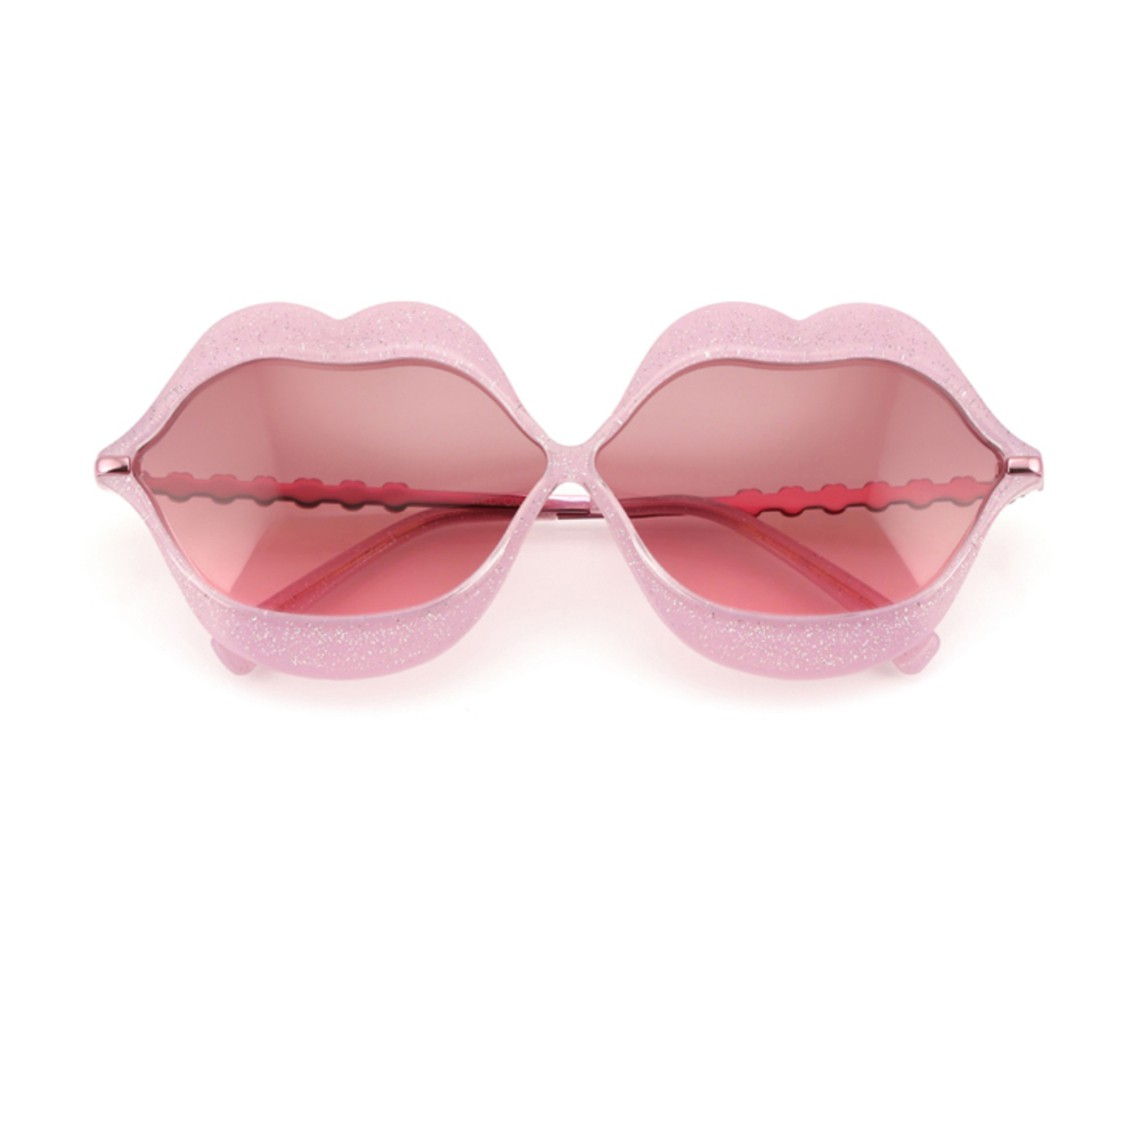 Read my lips. Lusting over these Lip Service sunnies? You're not the only one. $109 @wildfox.com